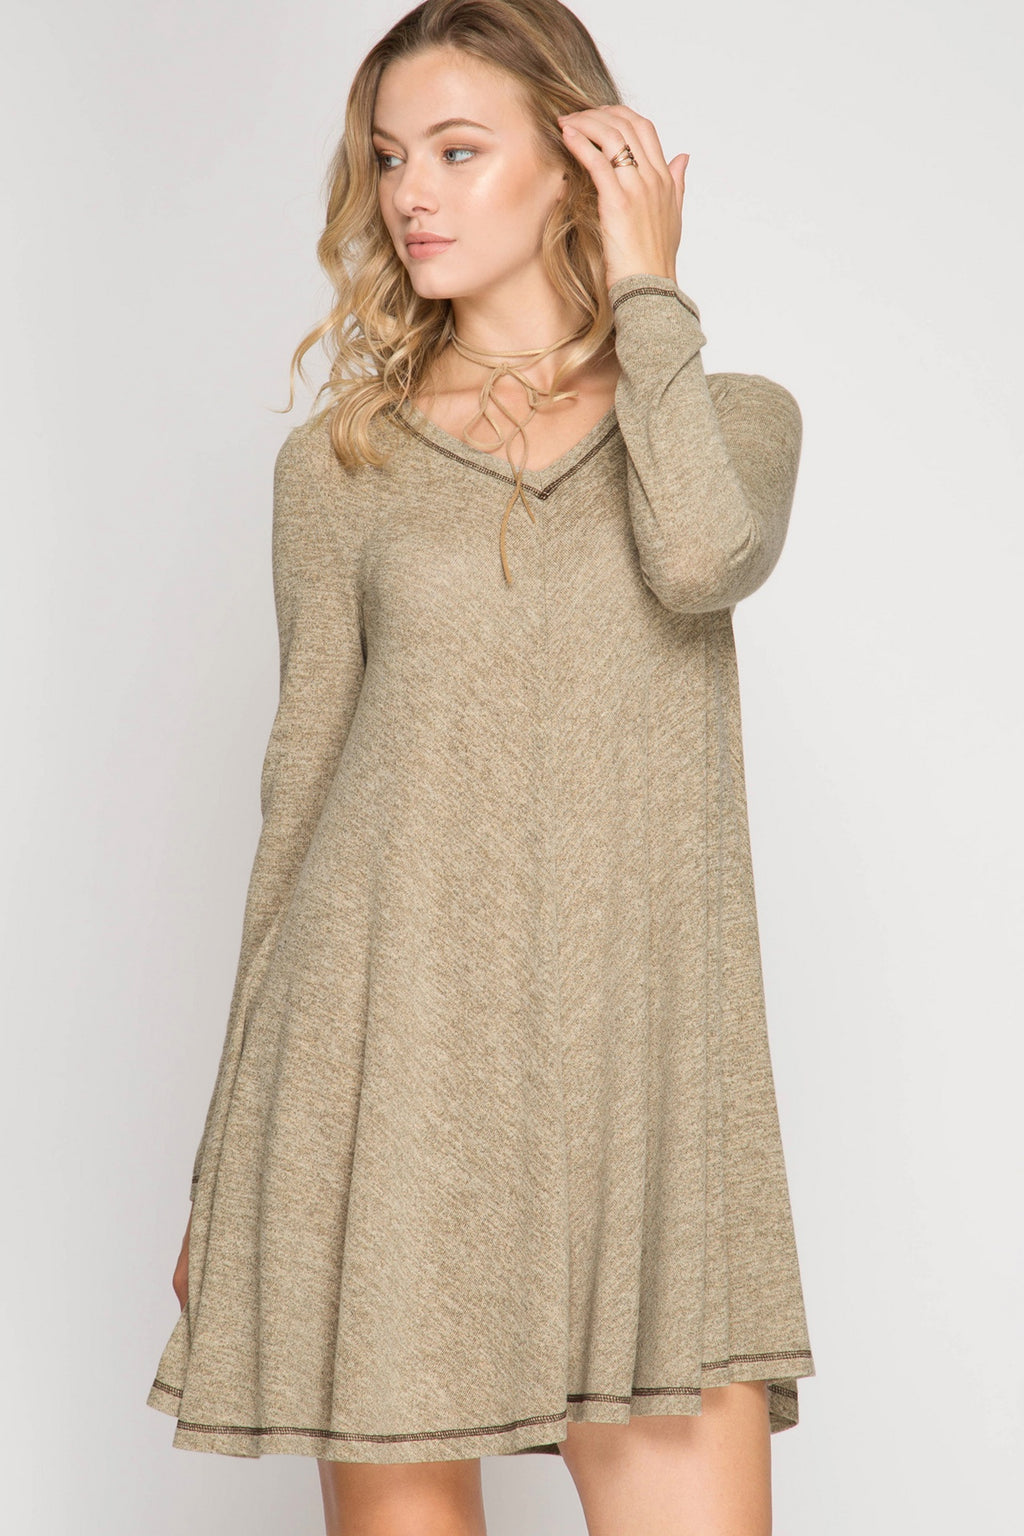 Oatmeal Long Sleeve Hacci Swing Dress